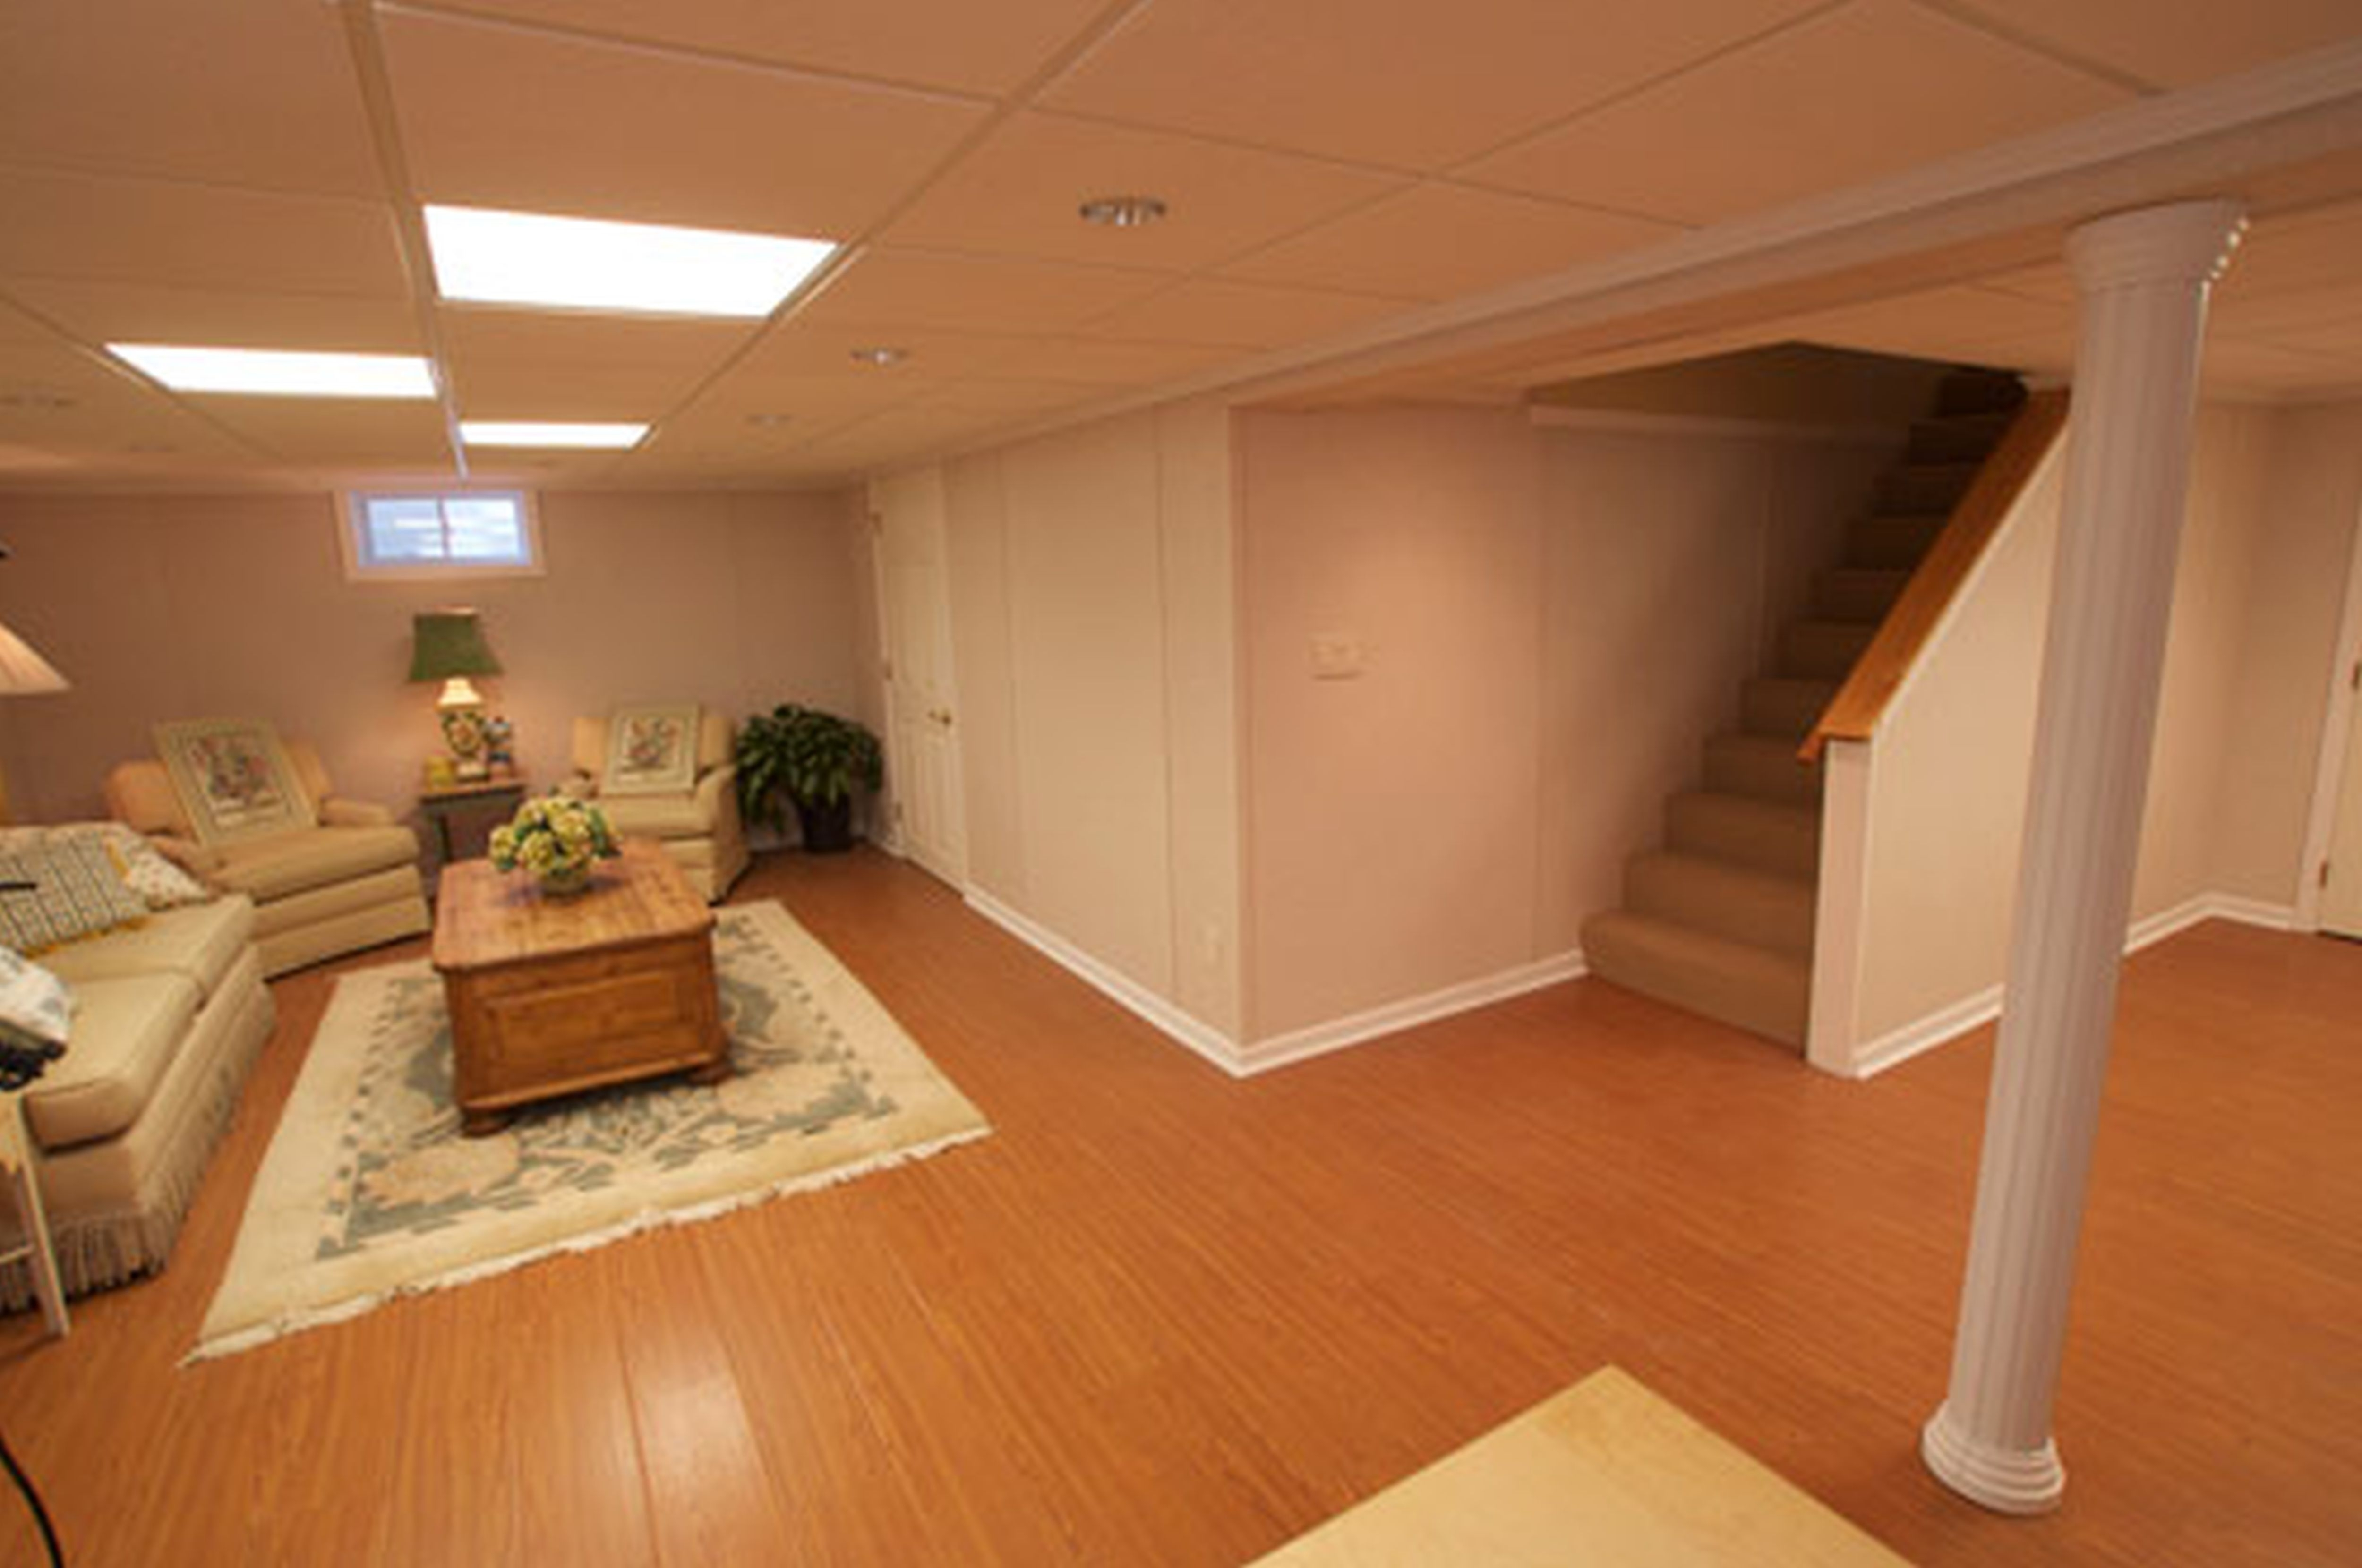 Permalink to Pictures Of Finished Basements With Bedrooms